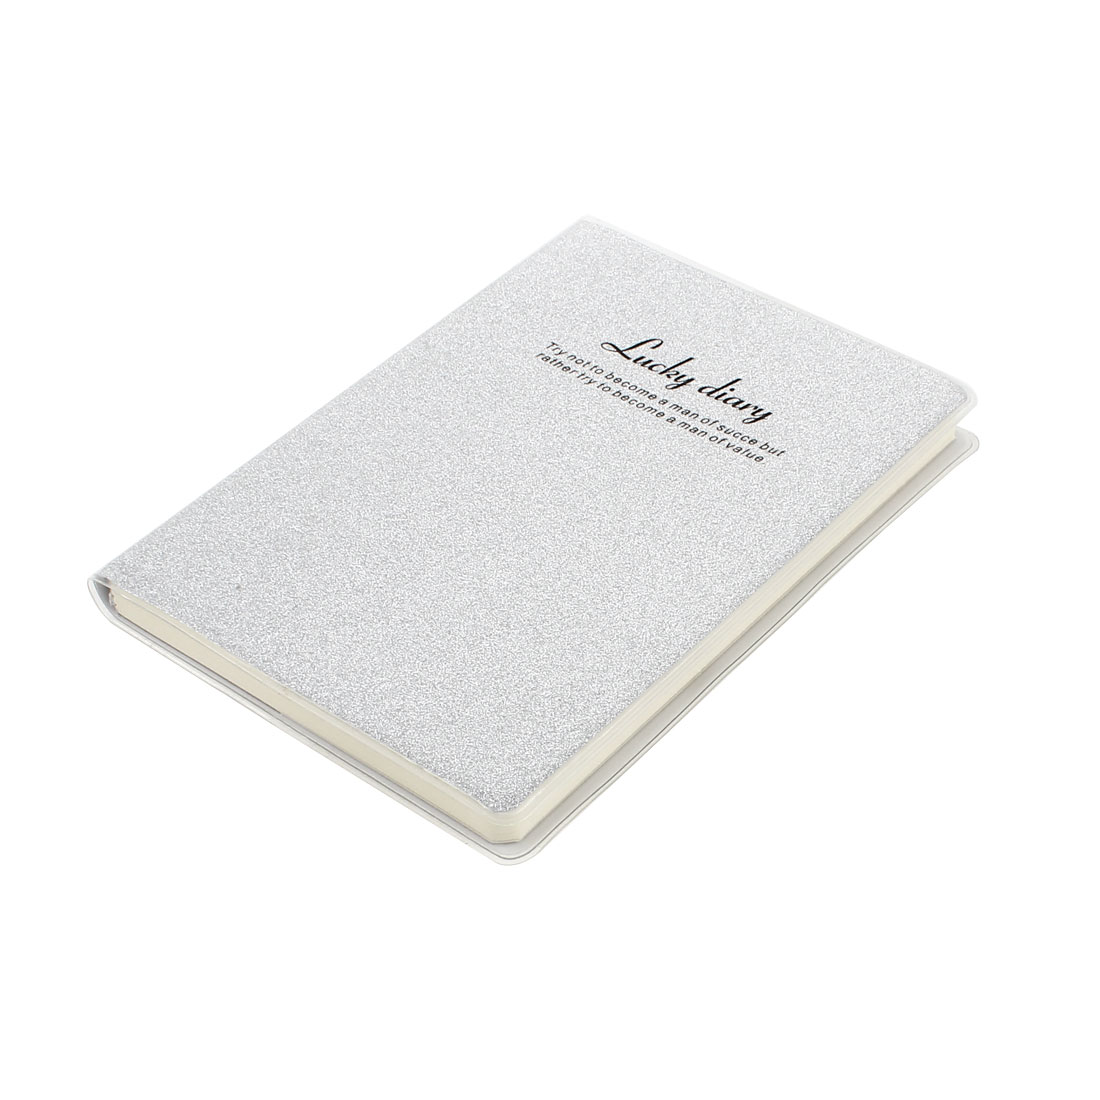 PVC Cover Gray Glitter Powder Decor Diary Memo Book Notepad 80 Sheets